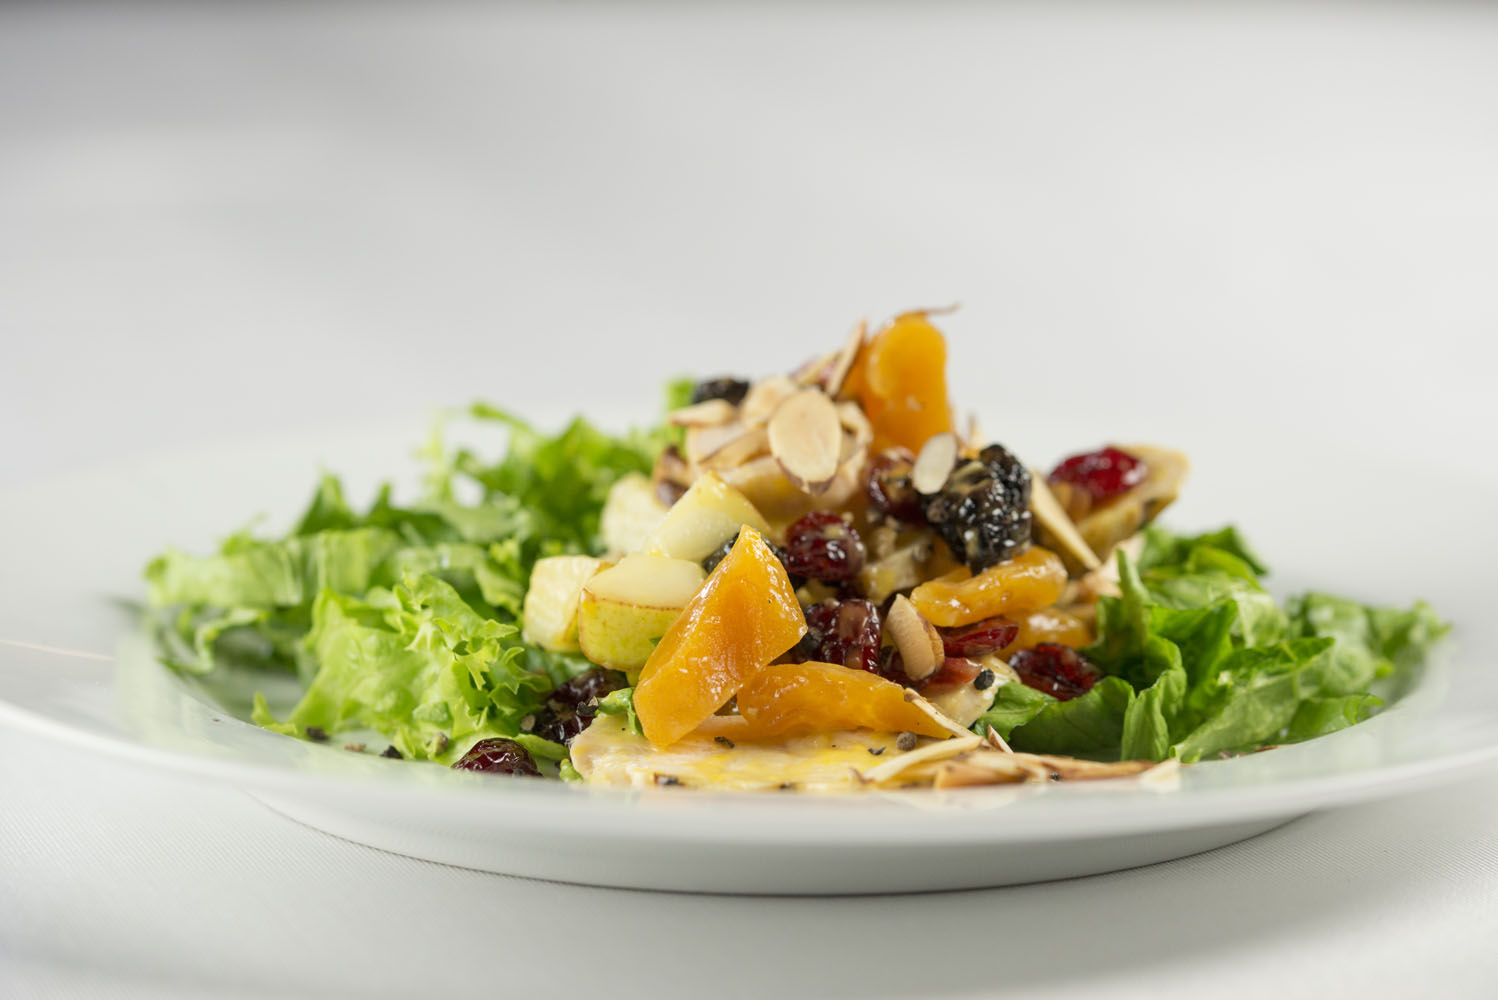 Bartlett Pair &Chicken Salad, free range chicken breast, Bartlett pears, dried cranberries, apricots, orange vinaigrette